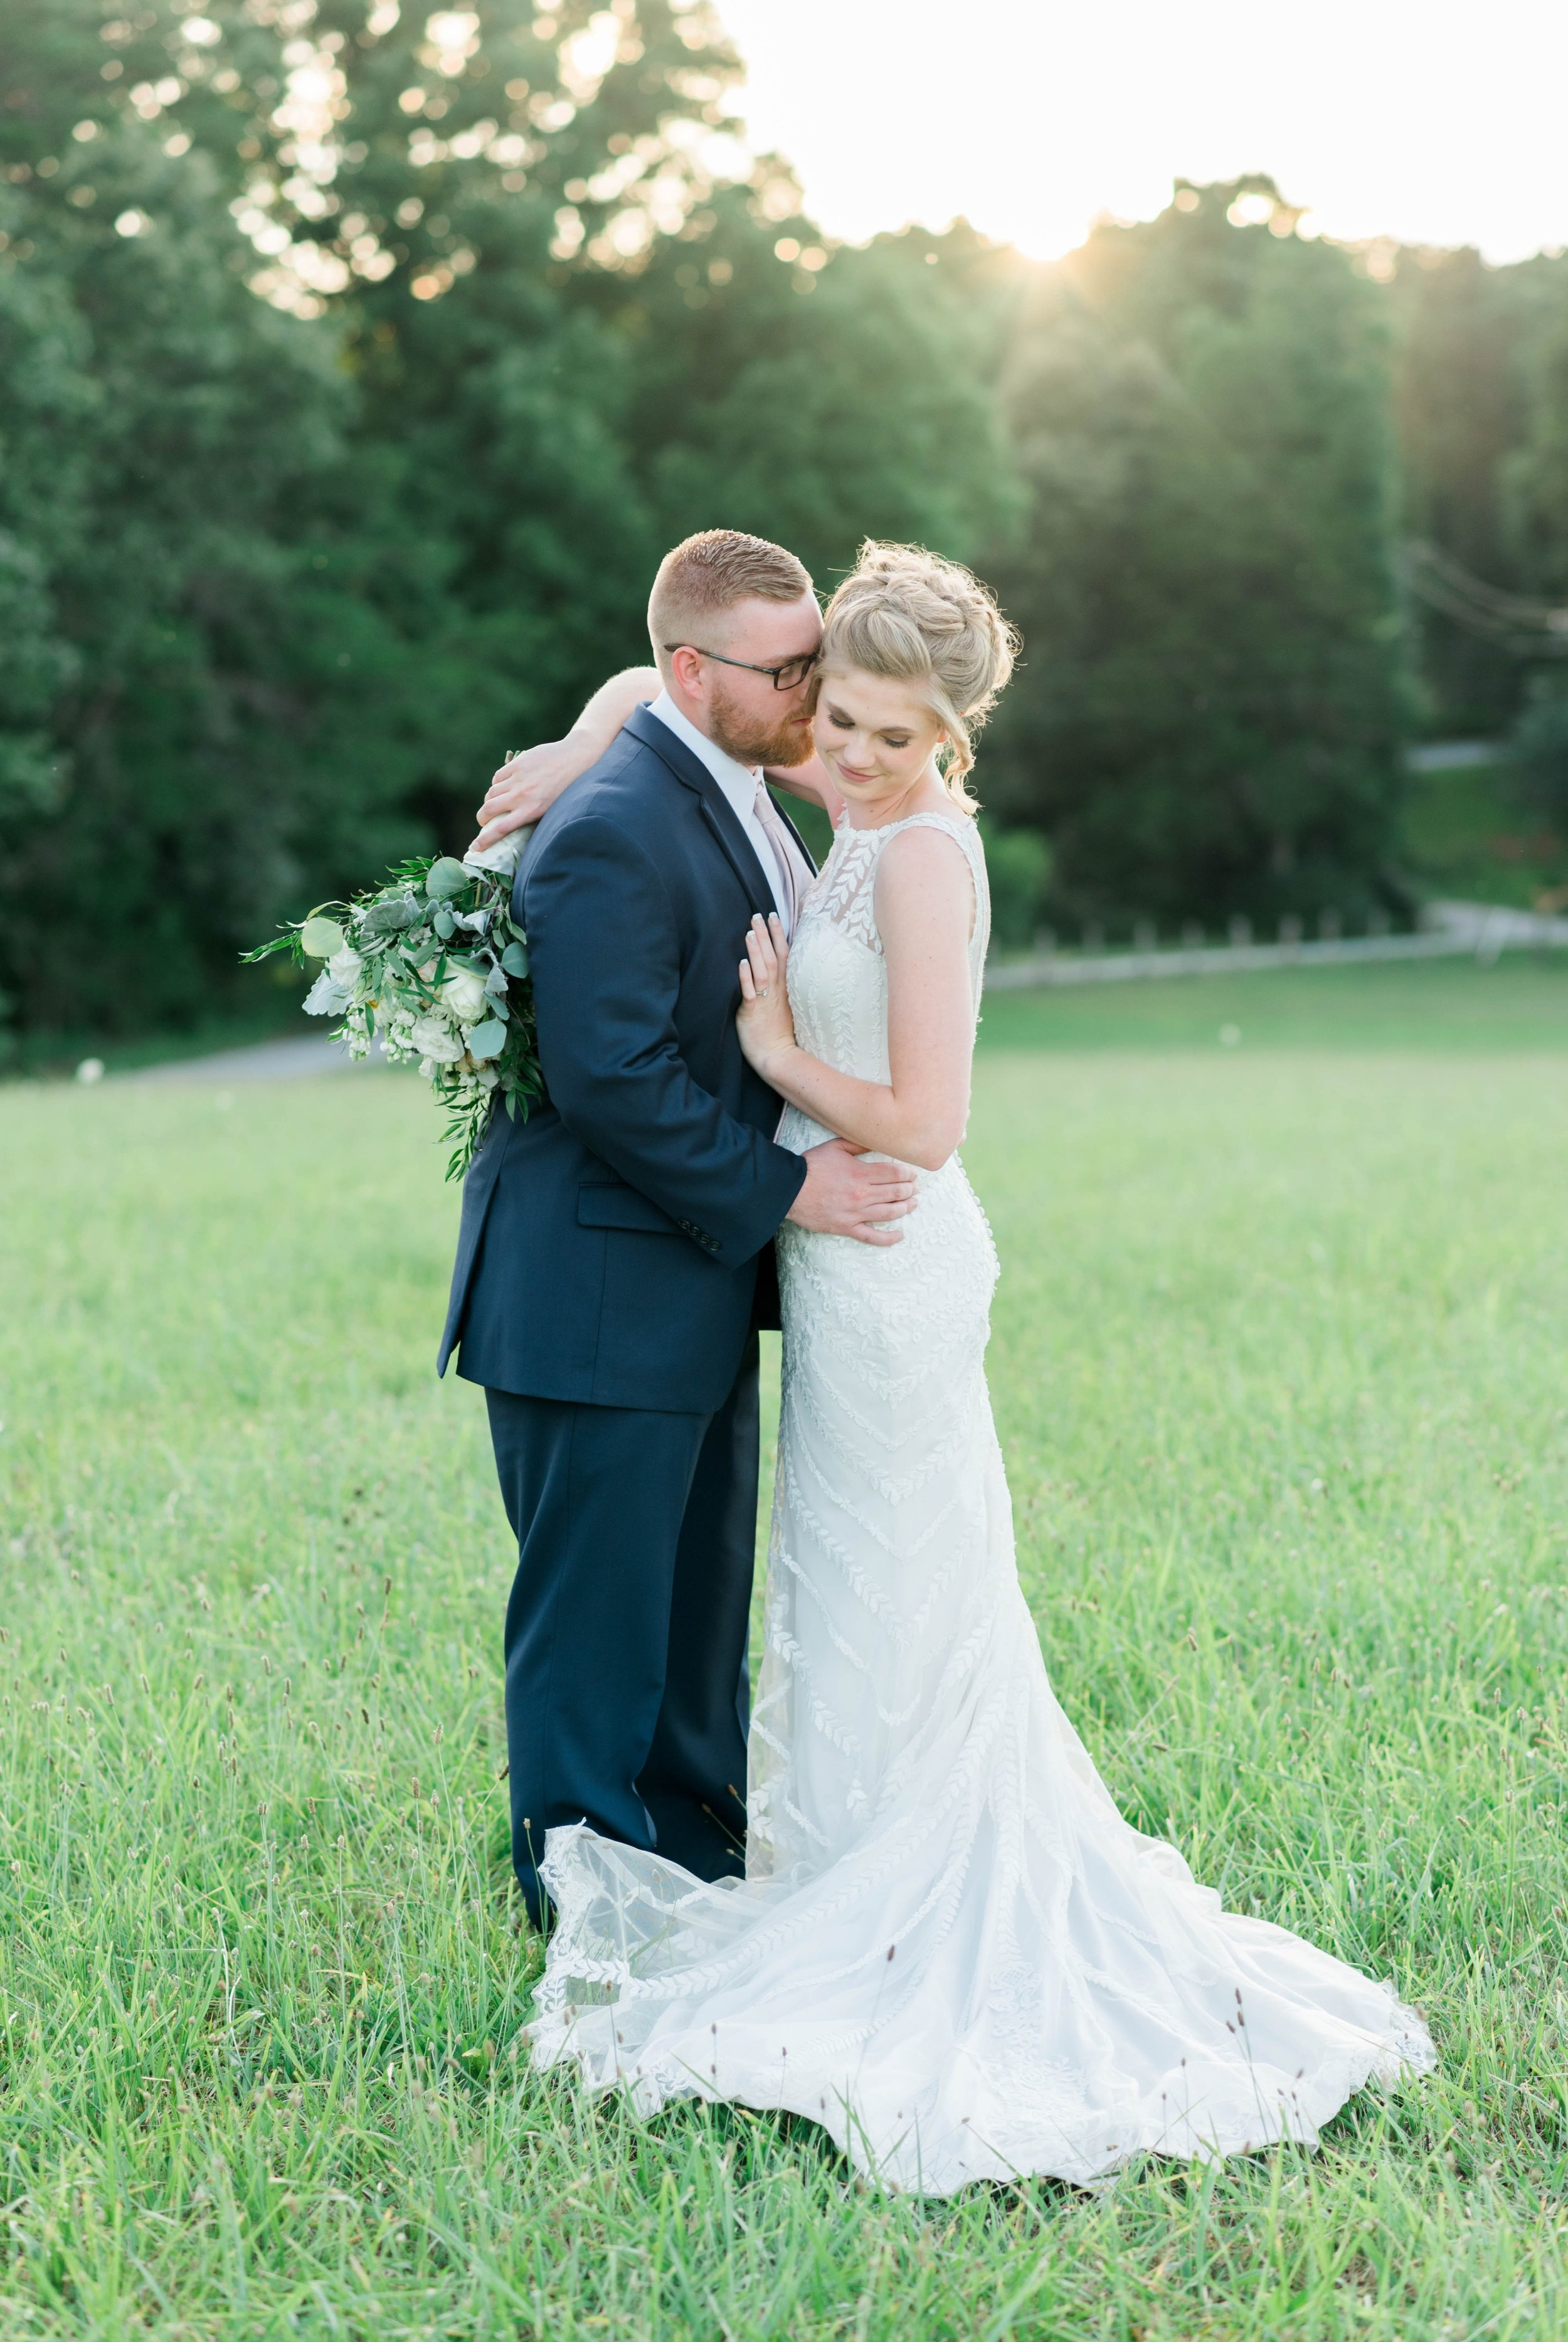 SorellaFarms_VirginiaWeddingPhotographer_BarnWedding_Lynchburgweddingphotographer_DanielleTyler 24.jpg